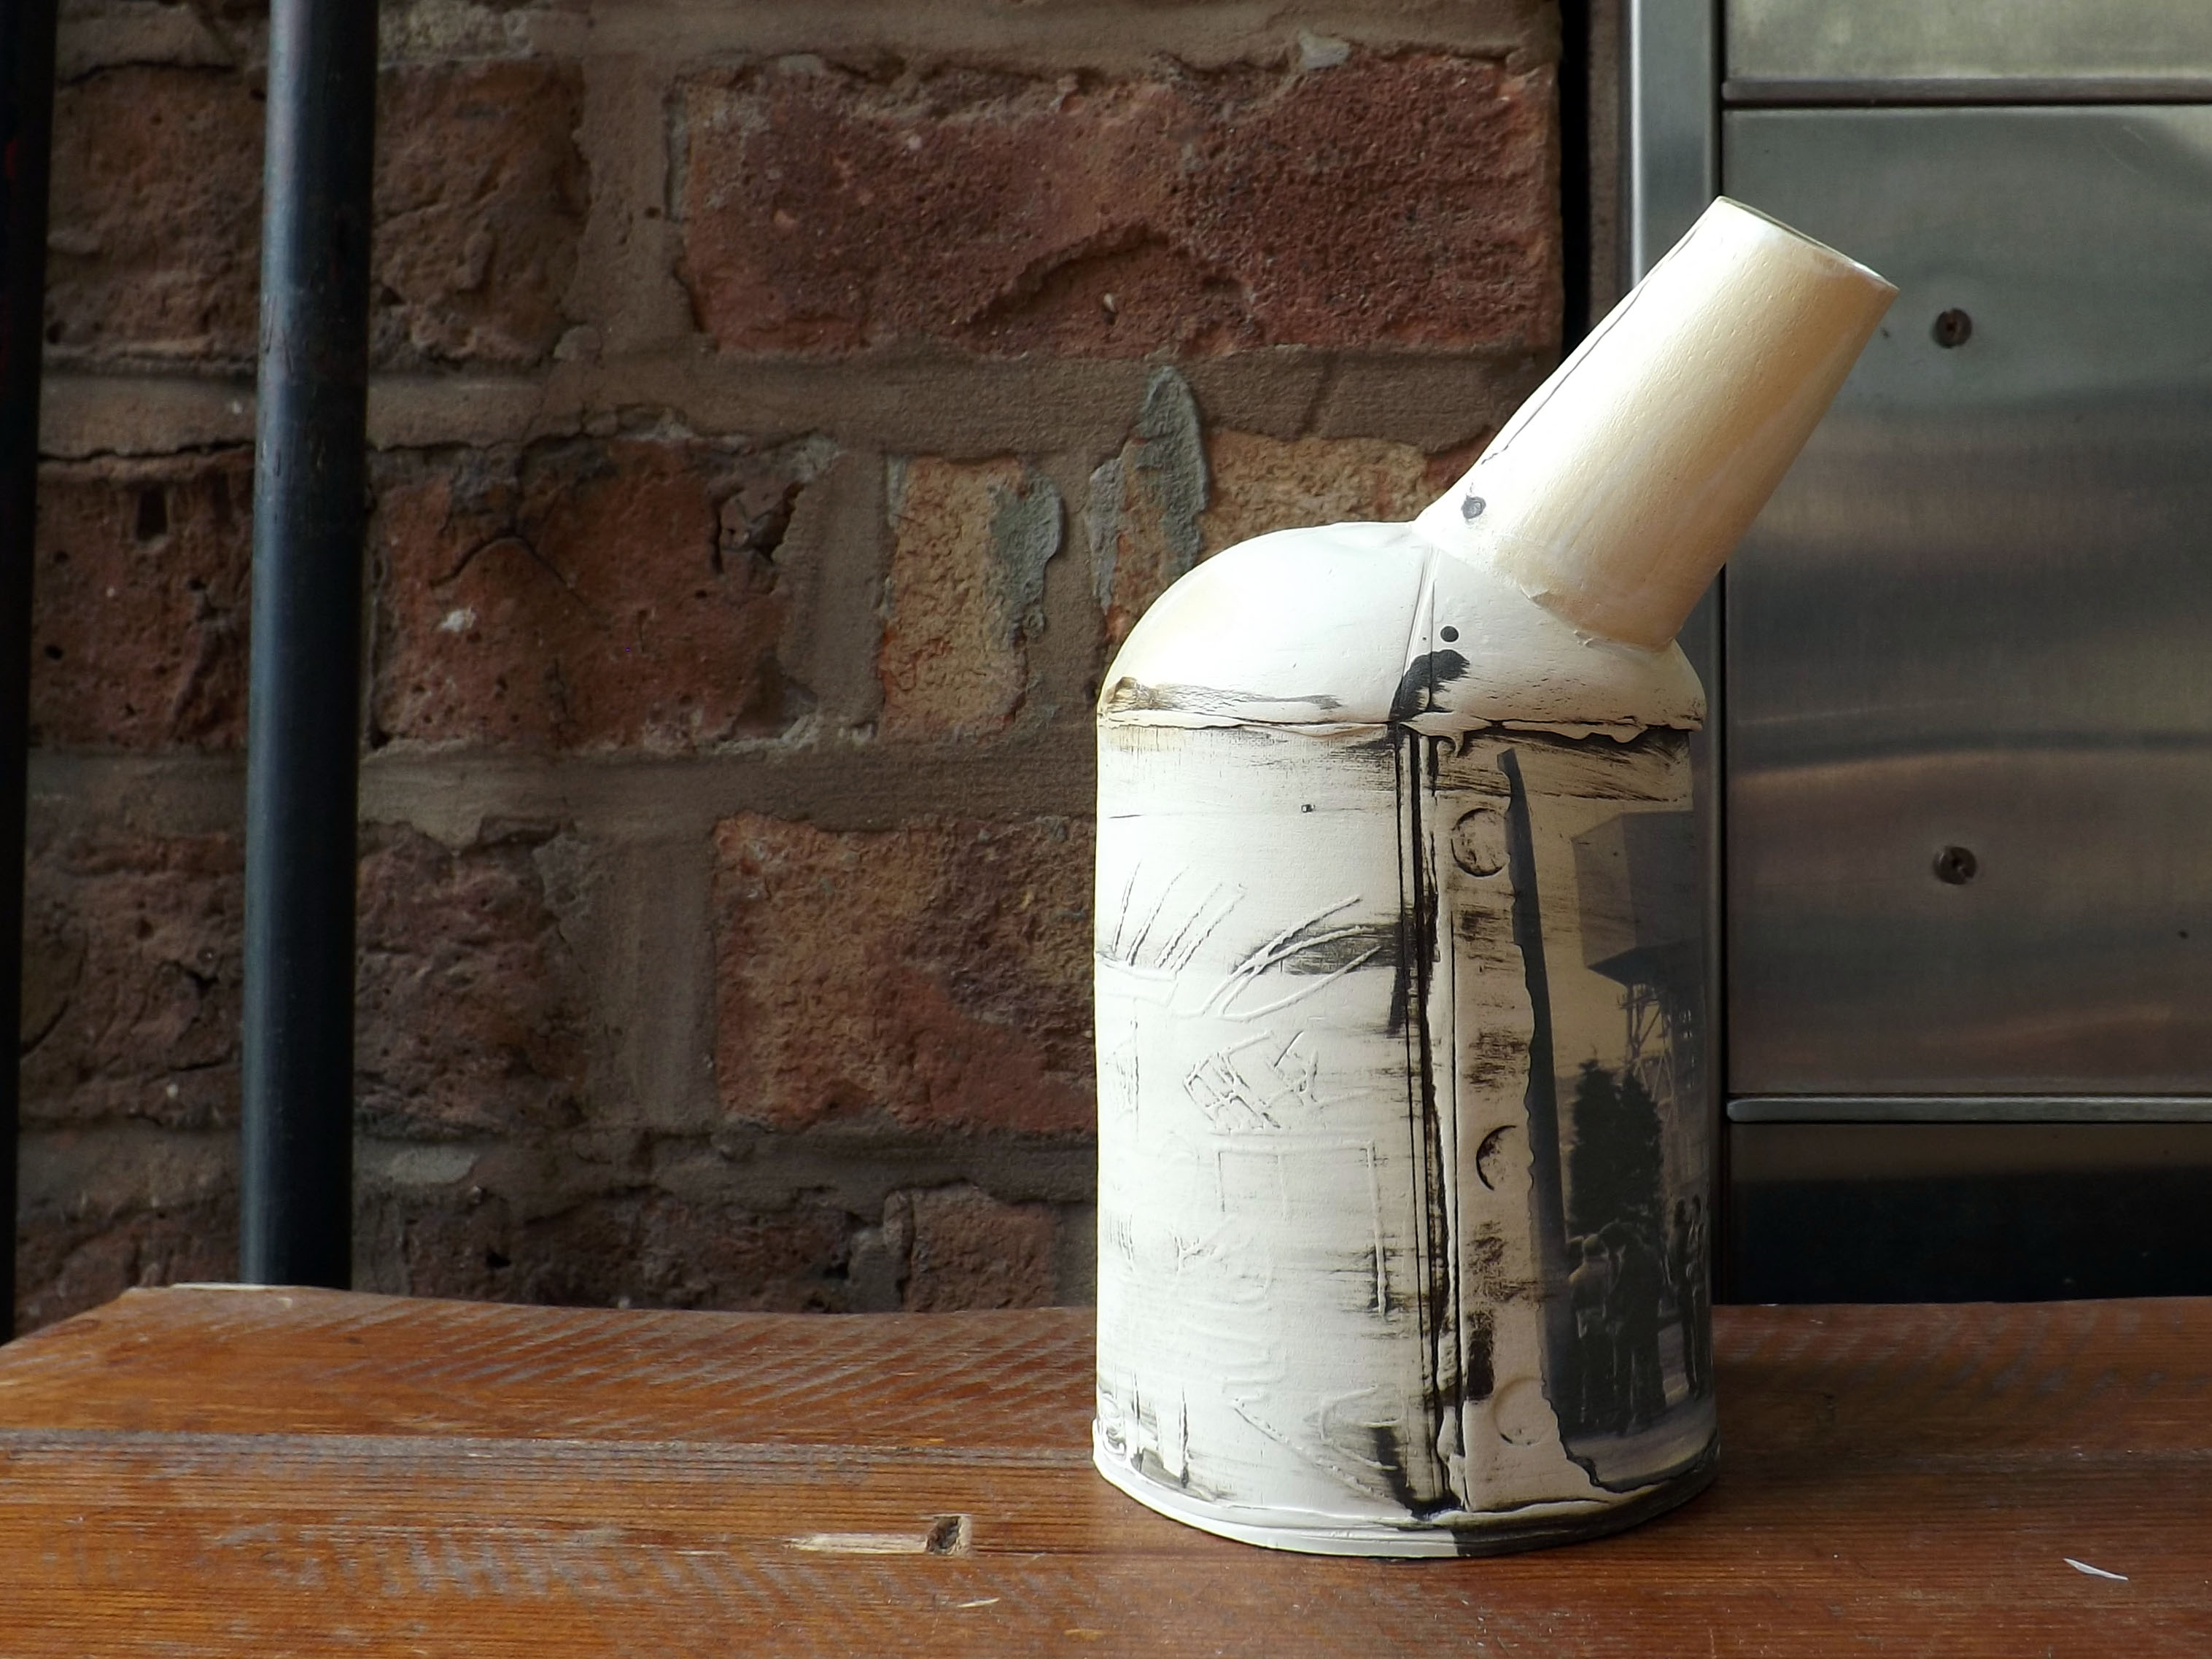 2 Ceramic vessels Stoke-on-Trent